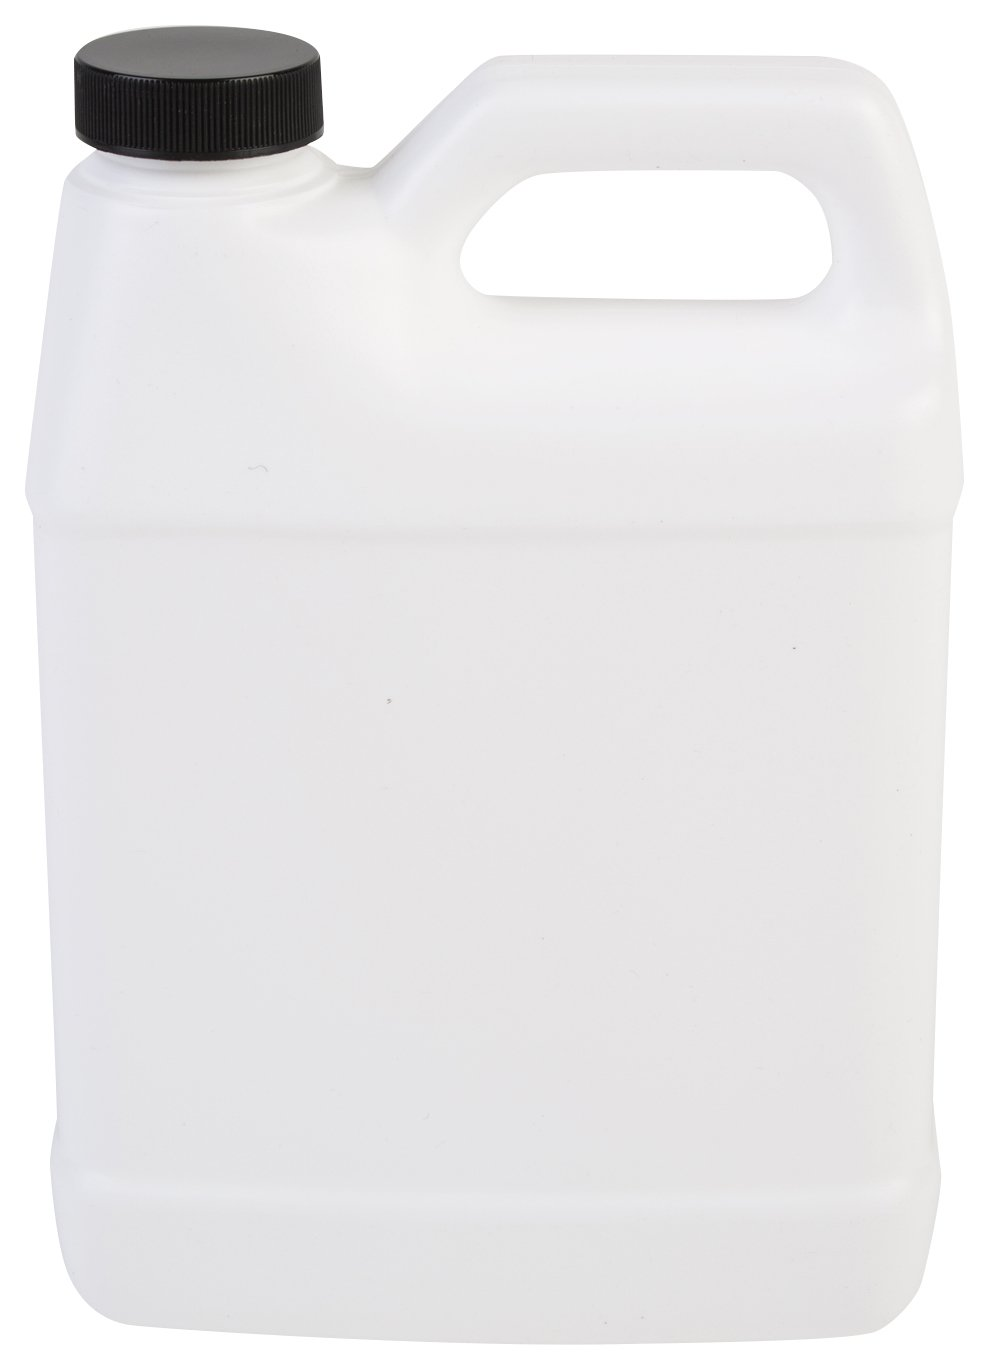 Consolidated Plastics Rectangular F-Style Bottle with Cap, HDPE, White, 32oz, 12 Piece by Consolidated Plastics